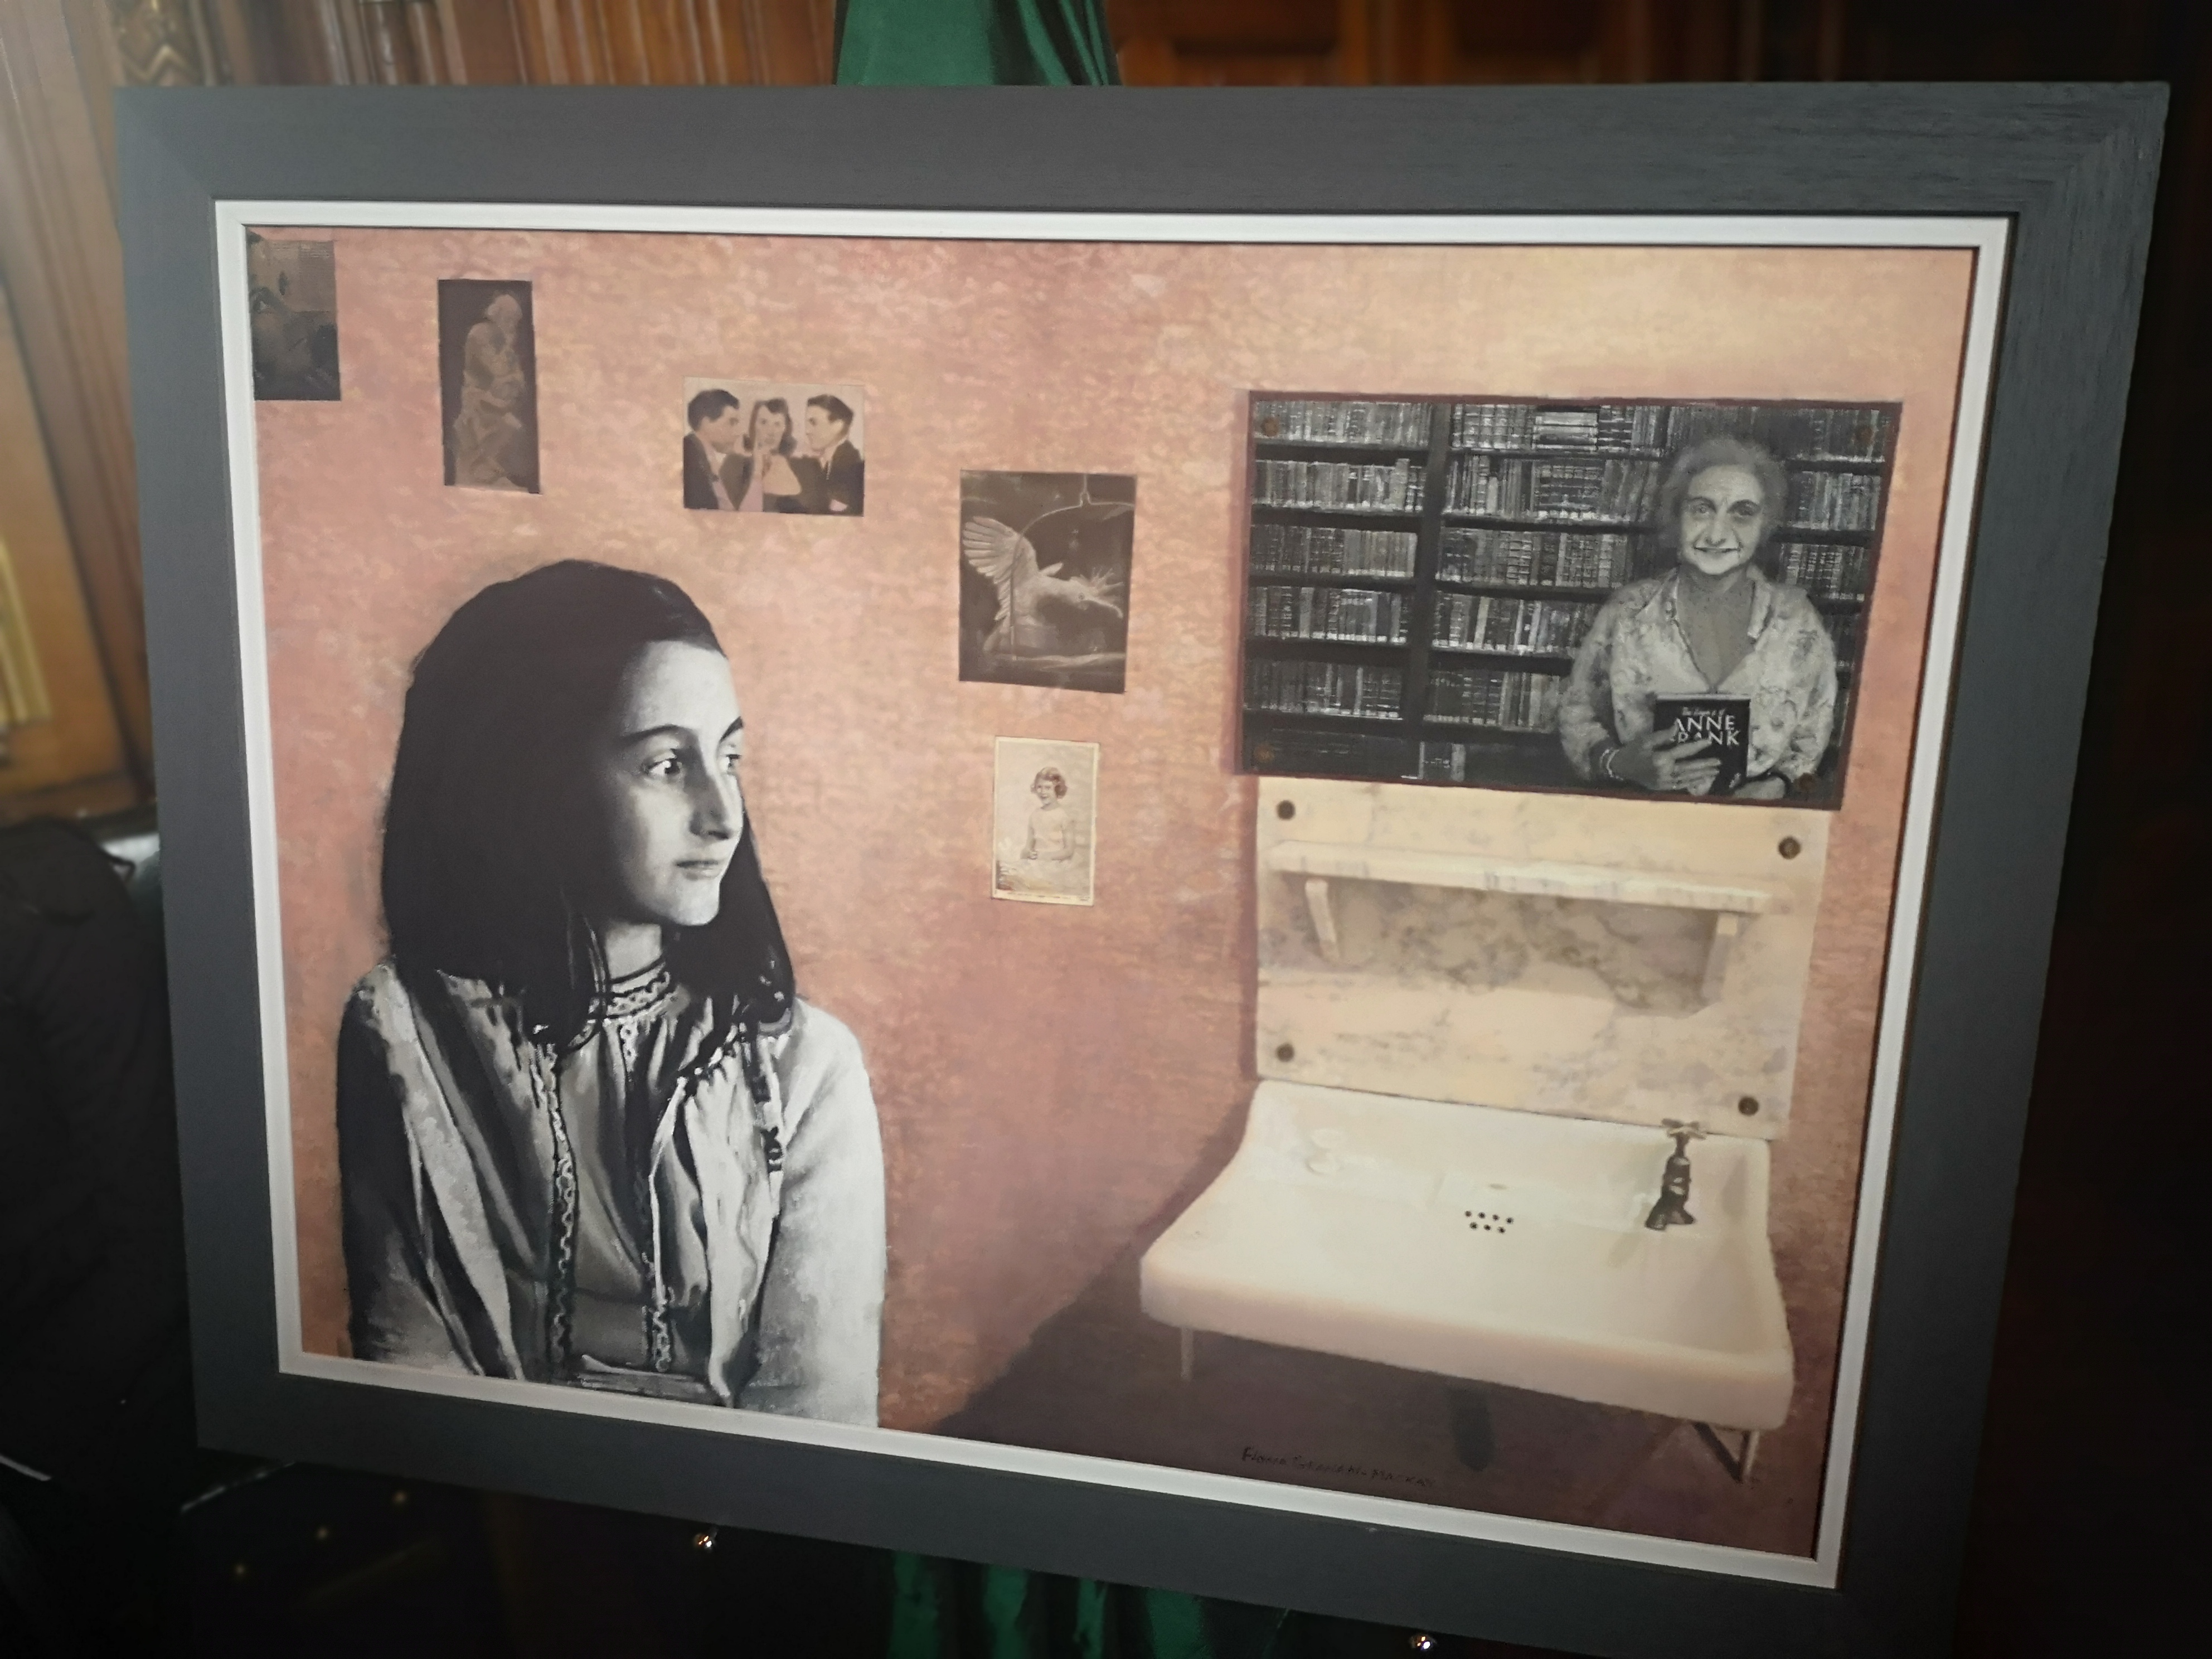 Anne Frank Reception – #IstandwithAnne